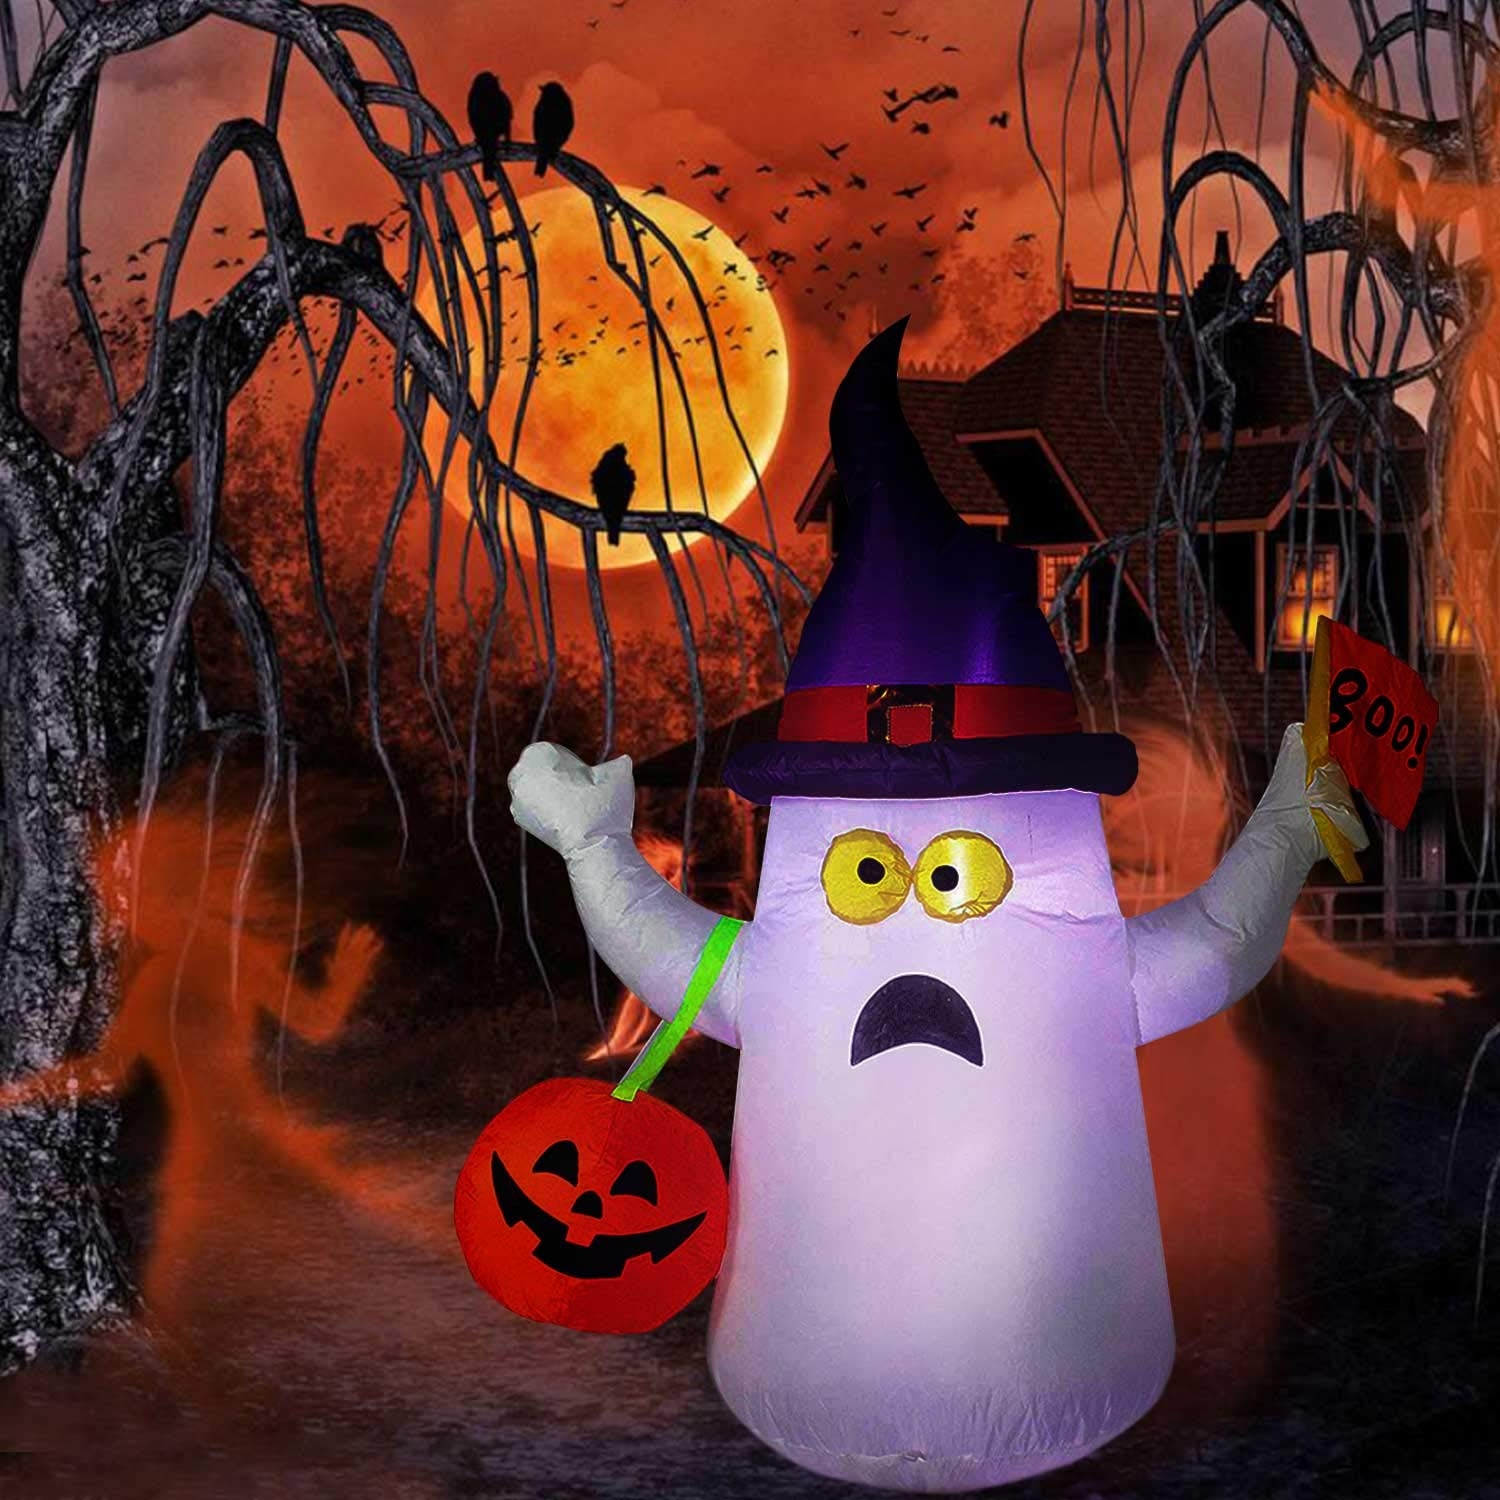 Hip Mall Halloween Inflatable Ghost, 4ft Lighted Blow Up Ghost Witch Hat Jack-O-Lantern Halloween Indoor Outdoor Yard Lawn Decoration (Purple)